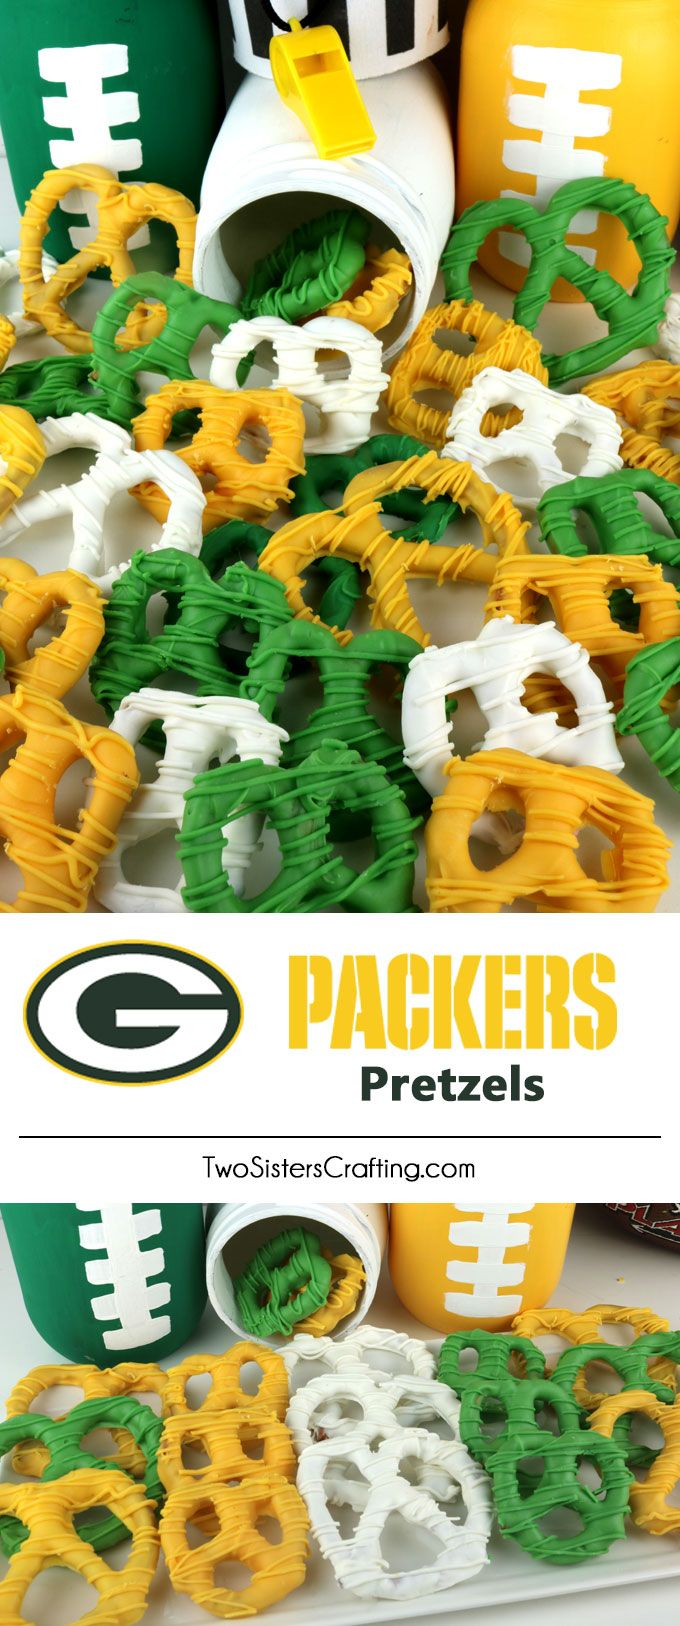 Green Bay Packers Pretzels - yummy bites of sweet and salty Football Game Day goodness that are super easy to make. They are perfect as a little extra treat at a NFL playoff party, a Super Bowl party or as a special dessert for the Green Bay Packers fan in your life. Follow us for more fun Super Bowl Food Ideas.